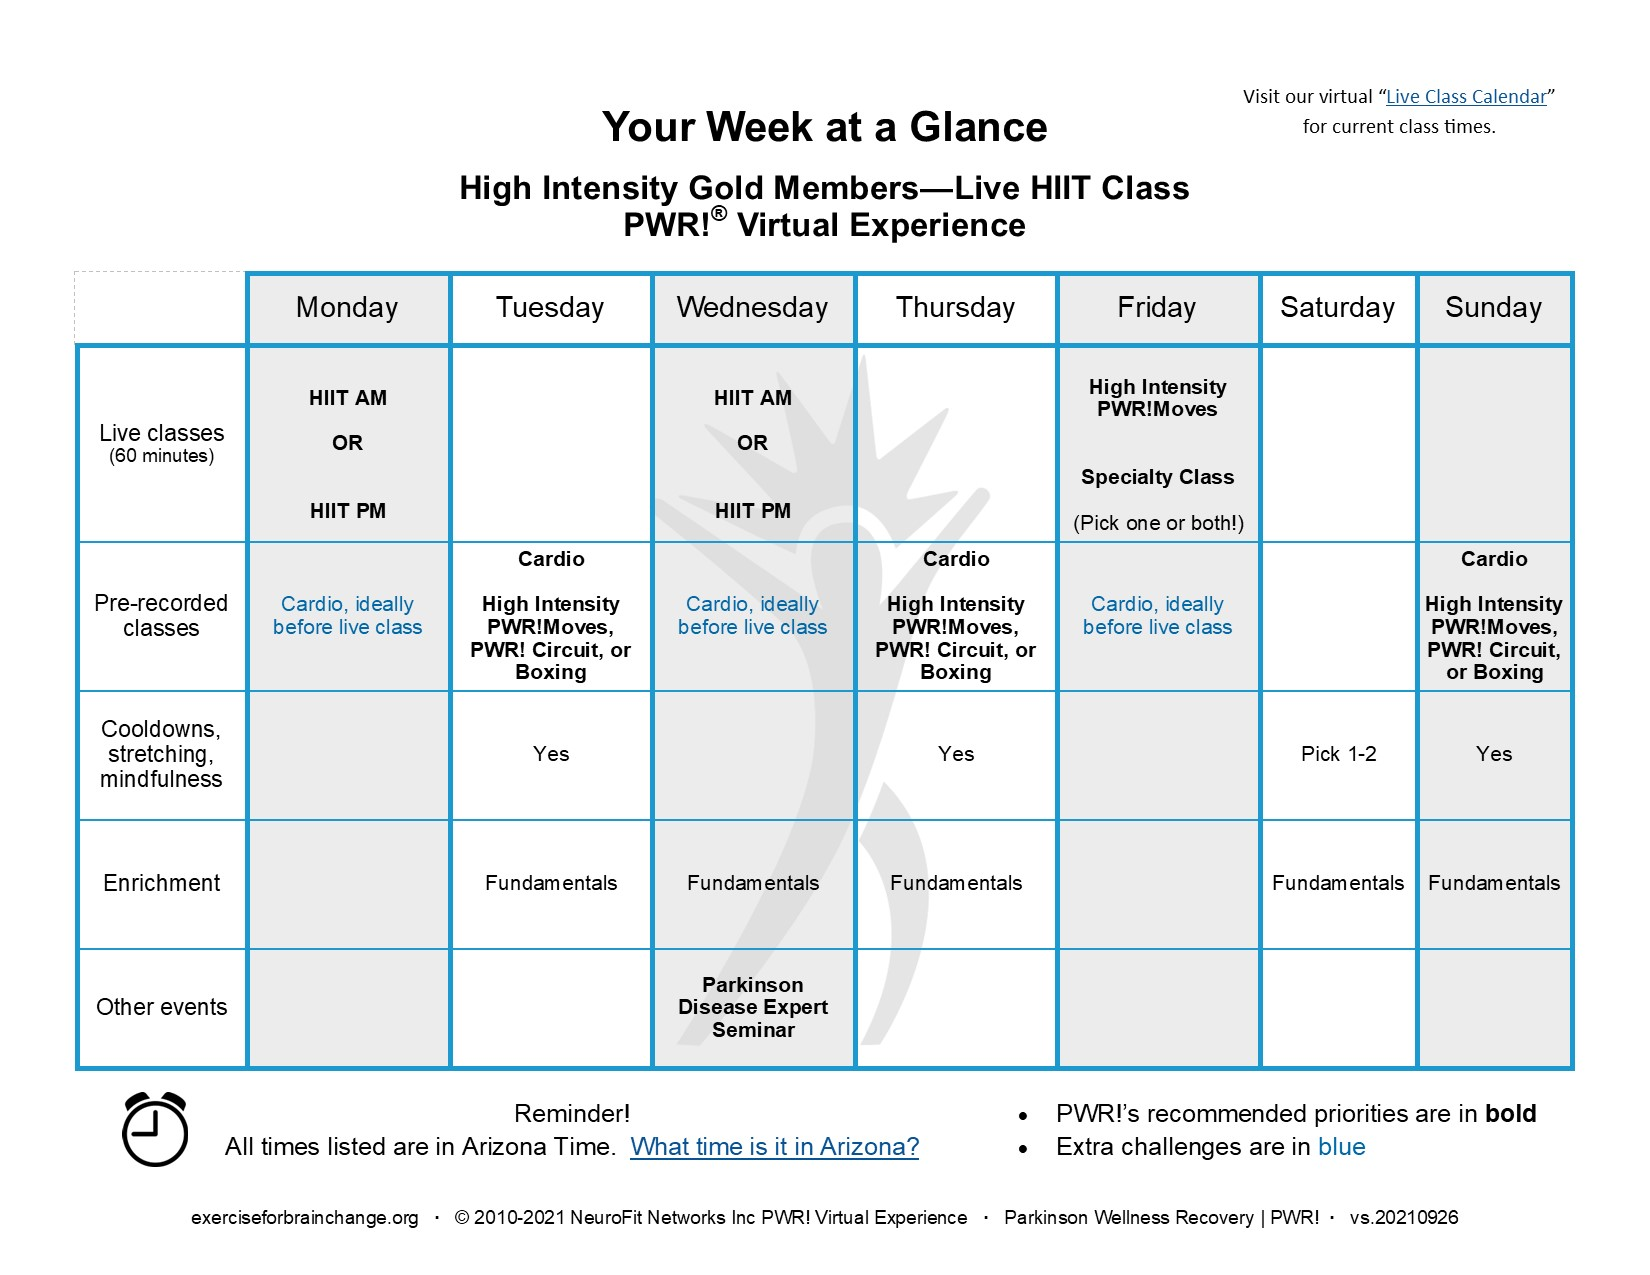 Week_at_a_Glance_High_Gold_HIIT_notimes